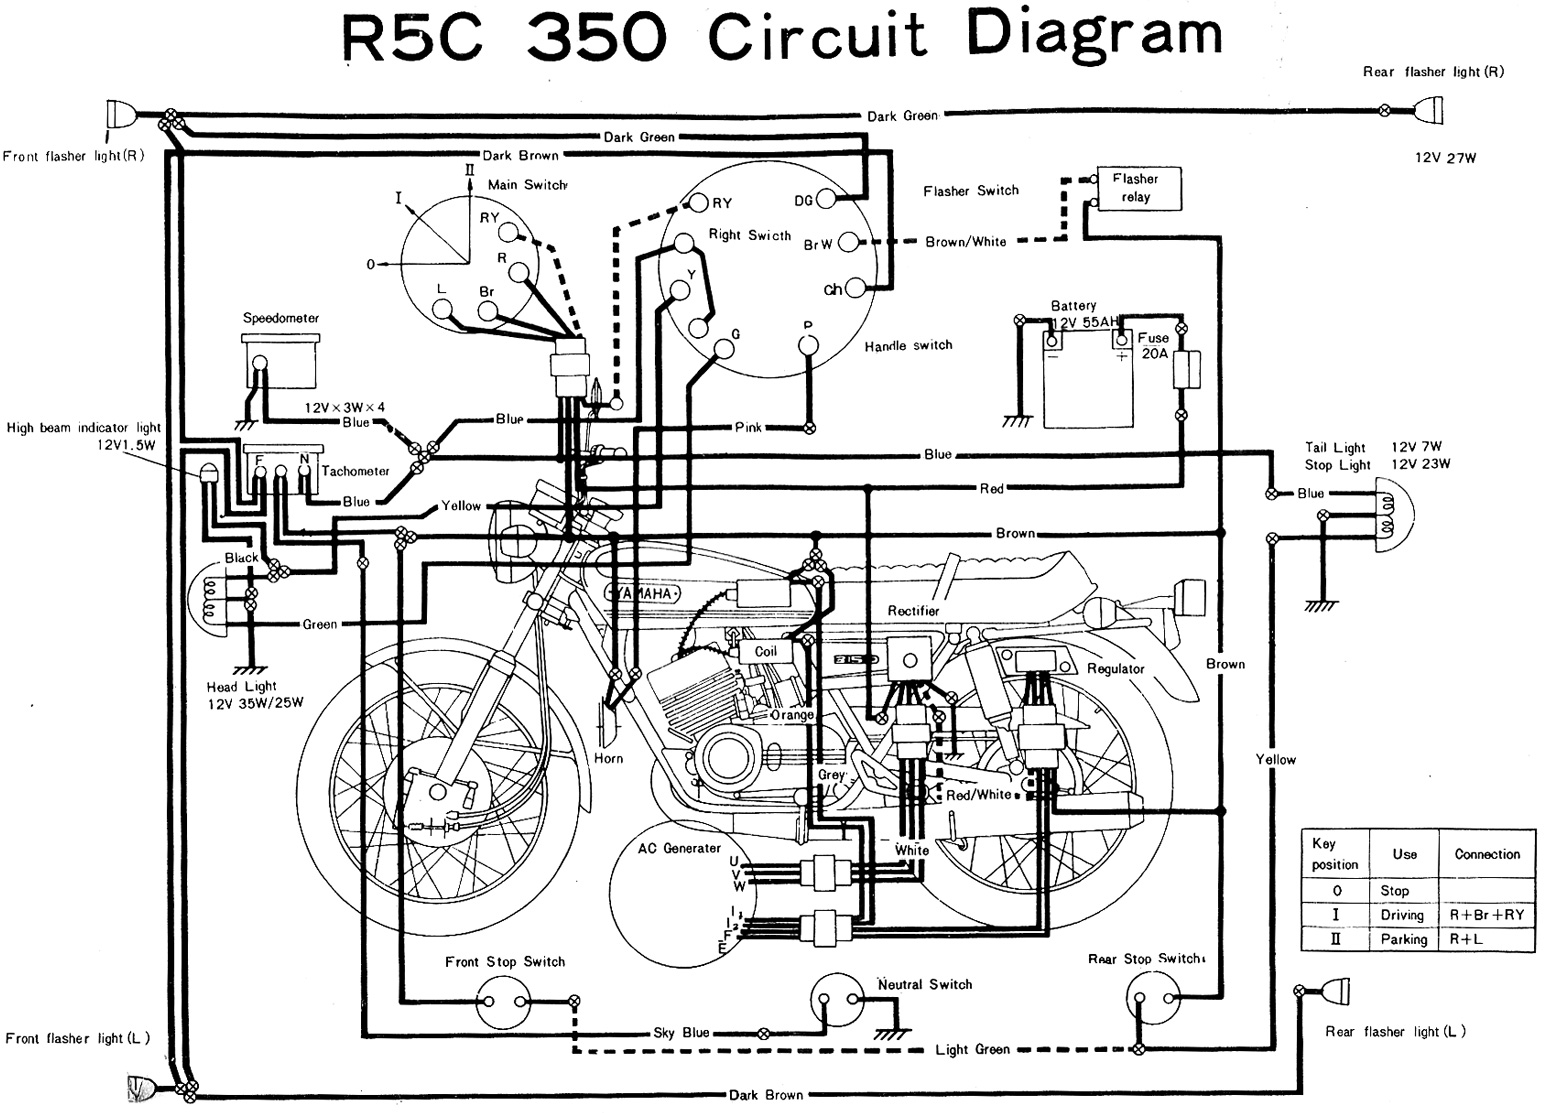 Free Motorcycle Wiring Diagrams - 7.15.kenmo-lp.de • on motorcycle headlight diagram, motorcycle gas tank lock, motorcycle shifter diagram, motorcycle tow hitches, motorcycle battery diagram, motorcycle magneto diagram, motorcycle foot controls diagram, motorcycle harness diagram, electric motorcycle diagram, motorcycle relay diagram, motorcycle body diagram, motorcycle brakes diagram, schematic diagram, motorcycle fuel reserve, motorcycle stator diagram, motorcycle carb diagram, motorcycle wire color codes, motorcycle motors diagram, motorcycle coil diagram, motorcycle maintenance diagram,